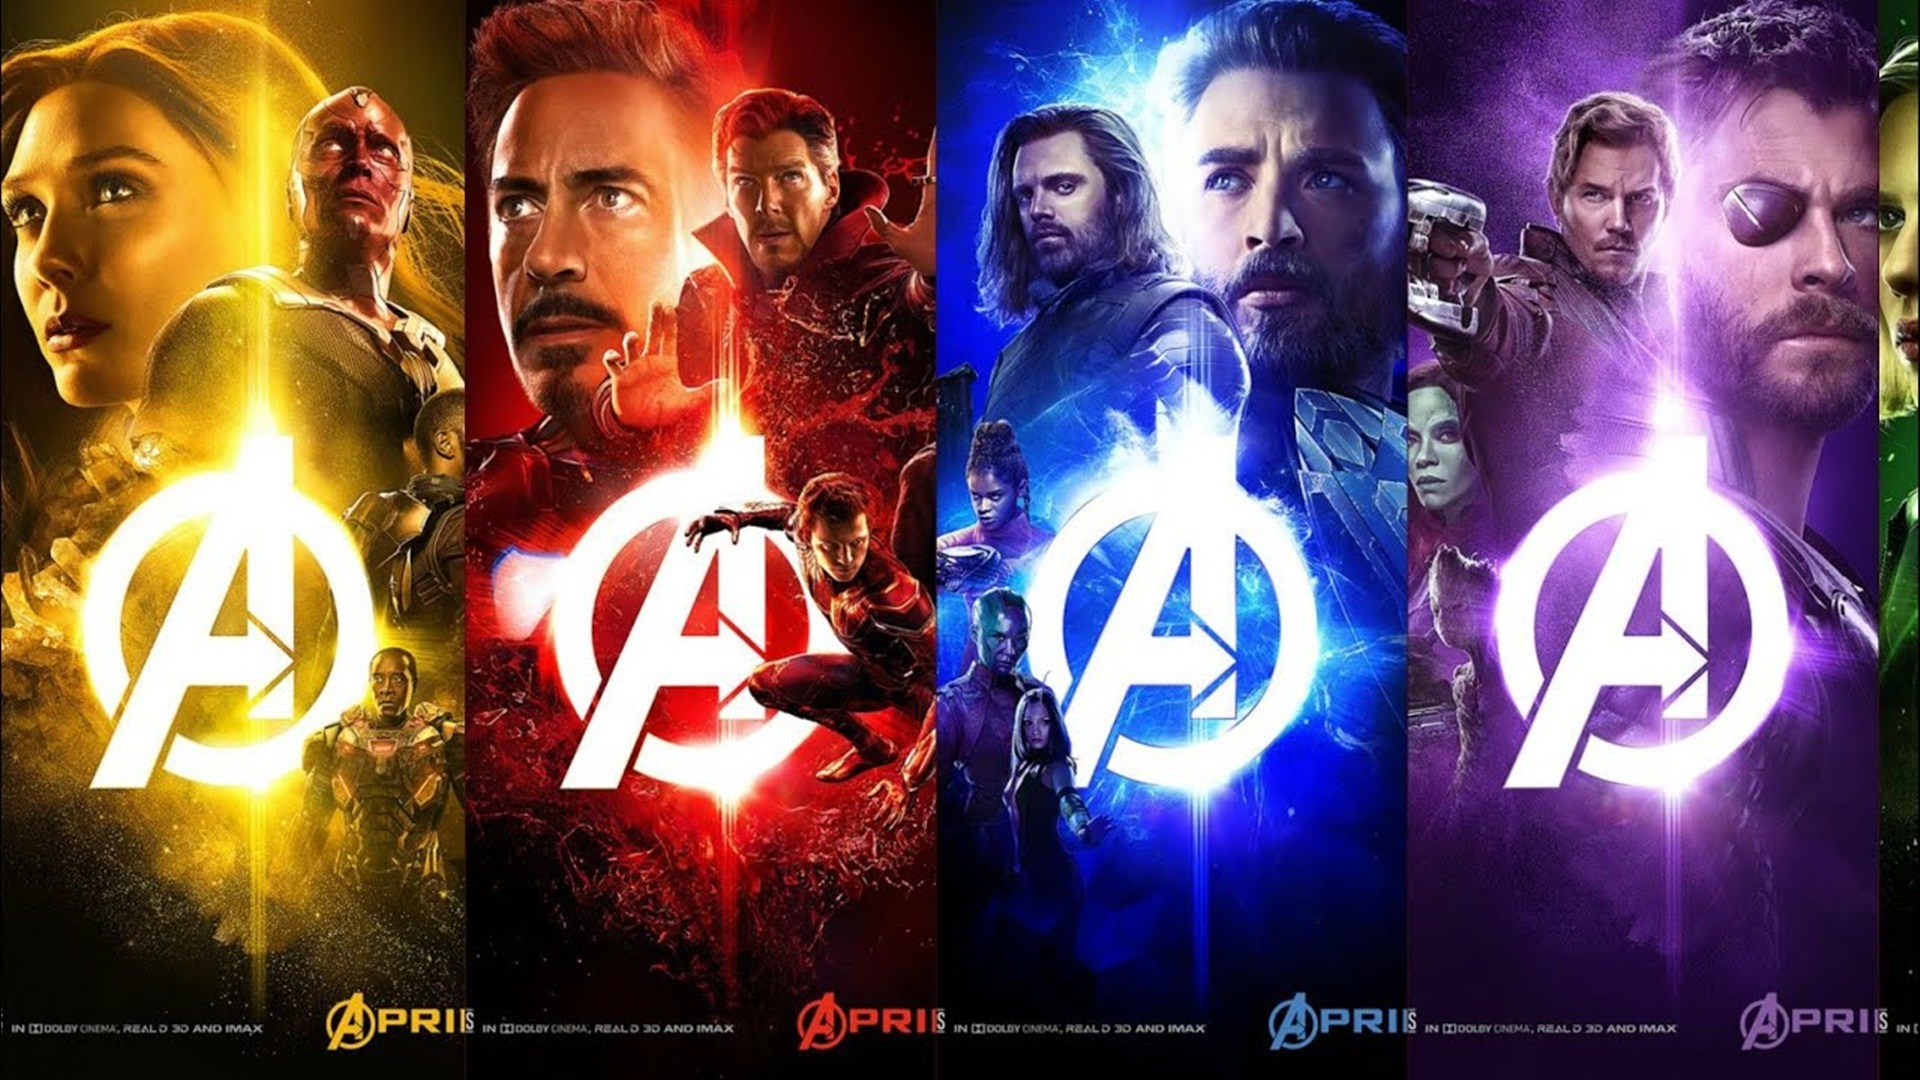 Avengers Endgame Hd Download Posted By Samantha Mercado